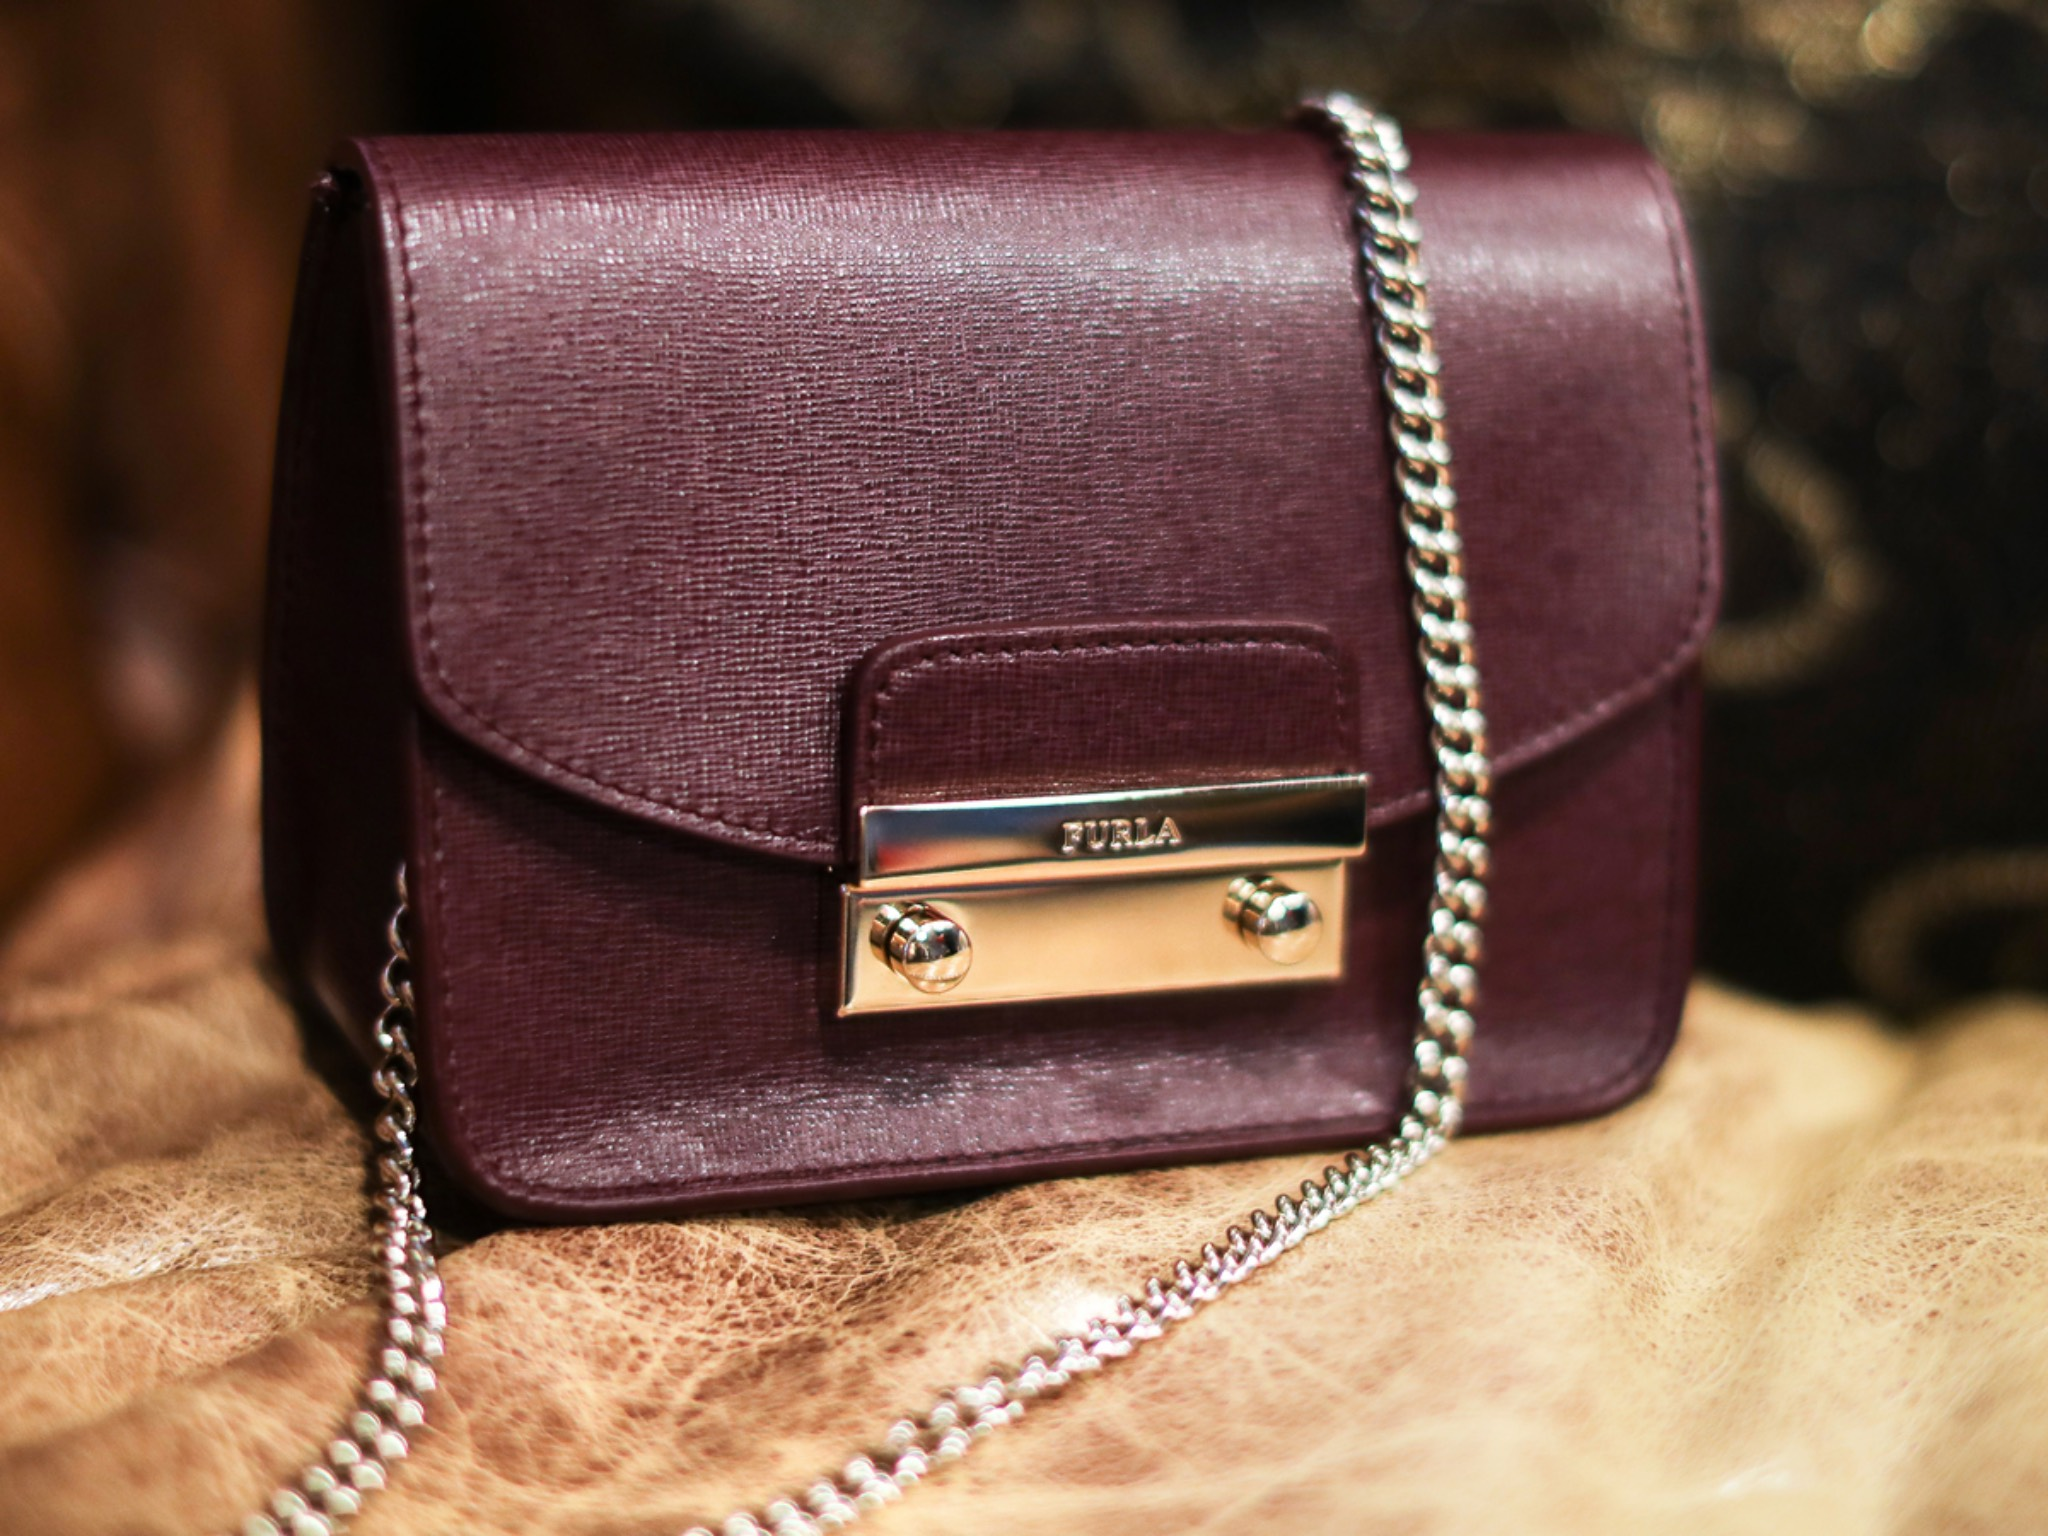 Minibag in Bordeaux von Furla. Foto: Wertheim Village